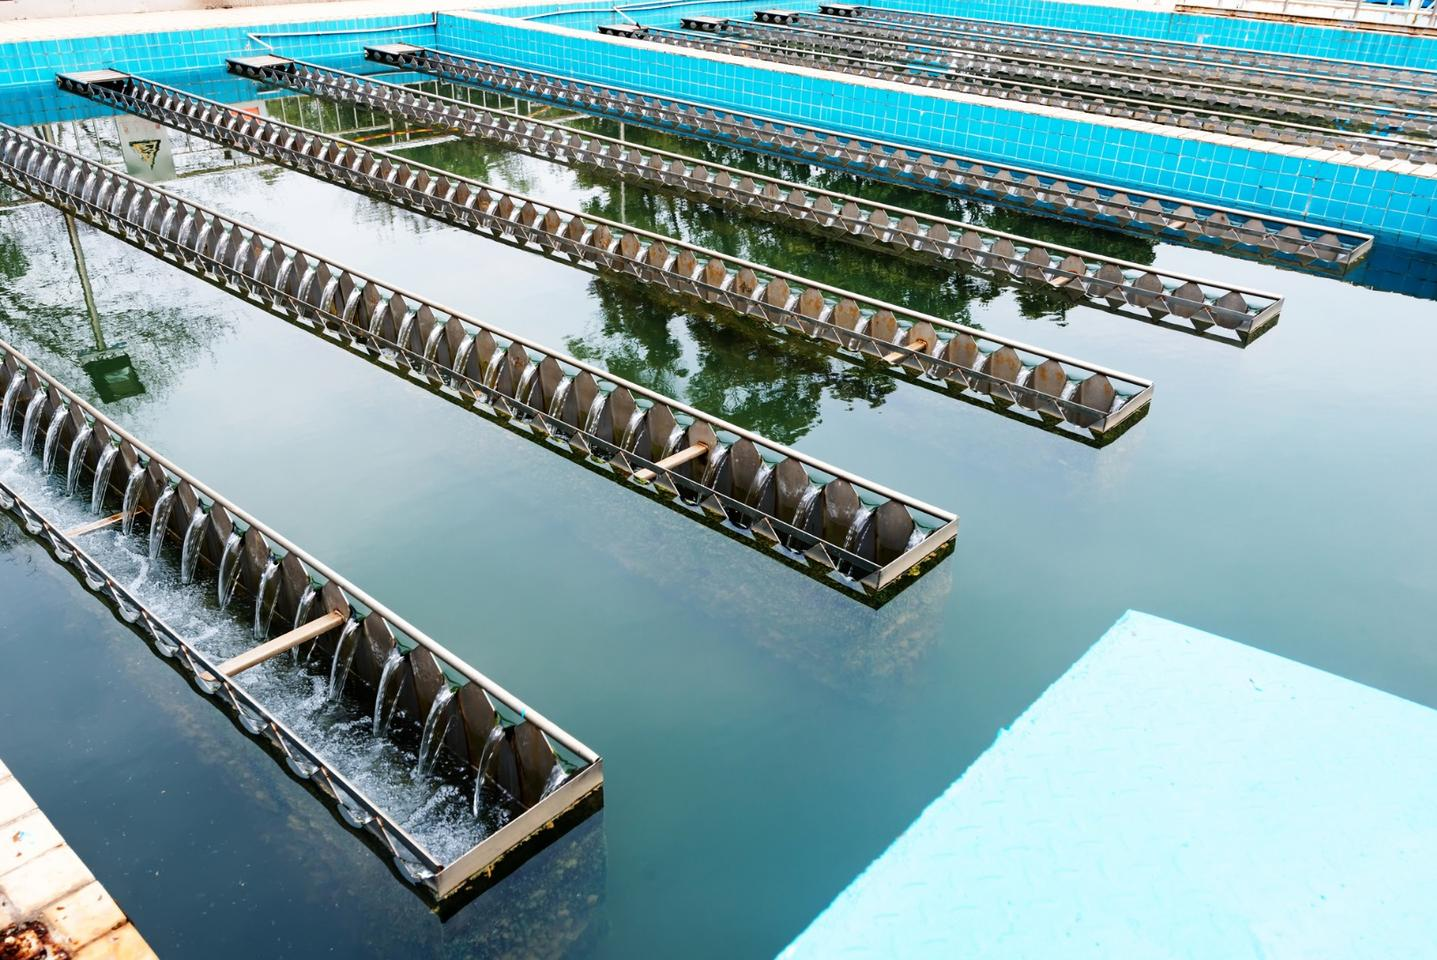 The discharge from coastal wastewater treatment plants could make them energy self-sufficient